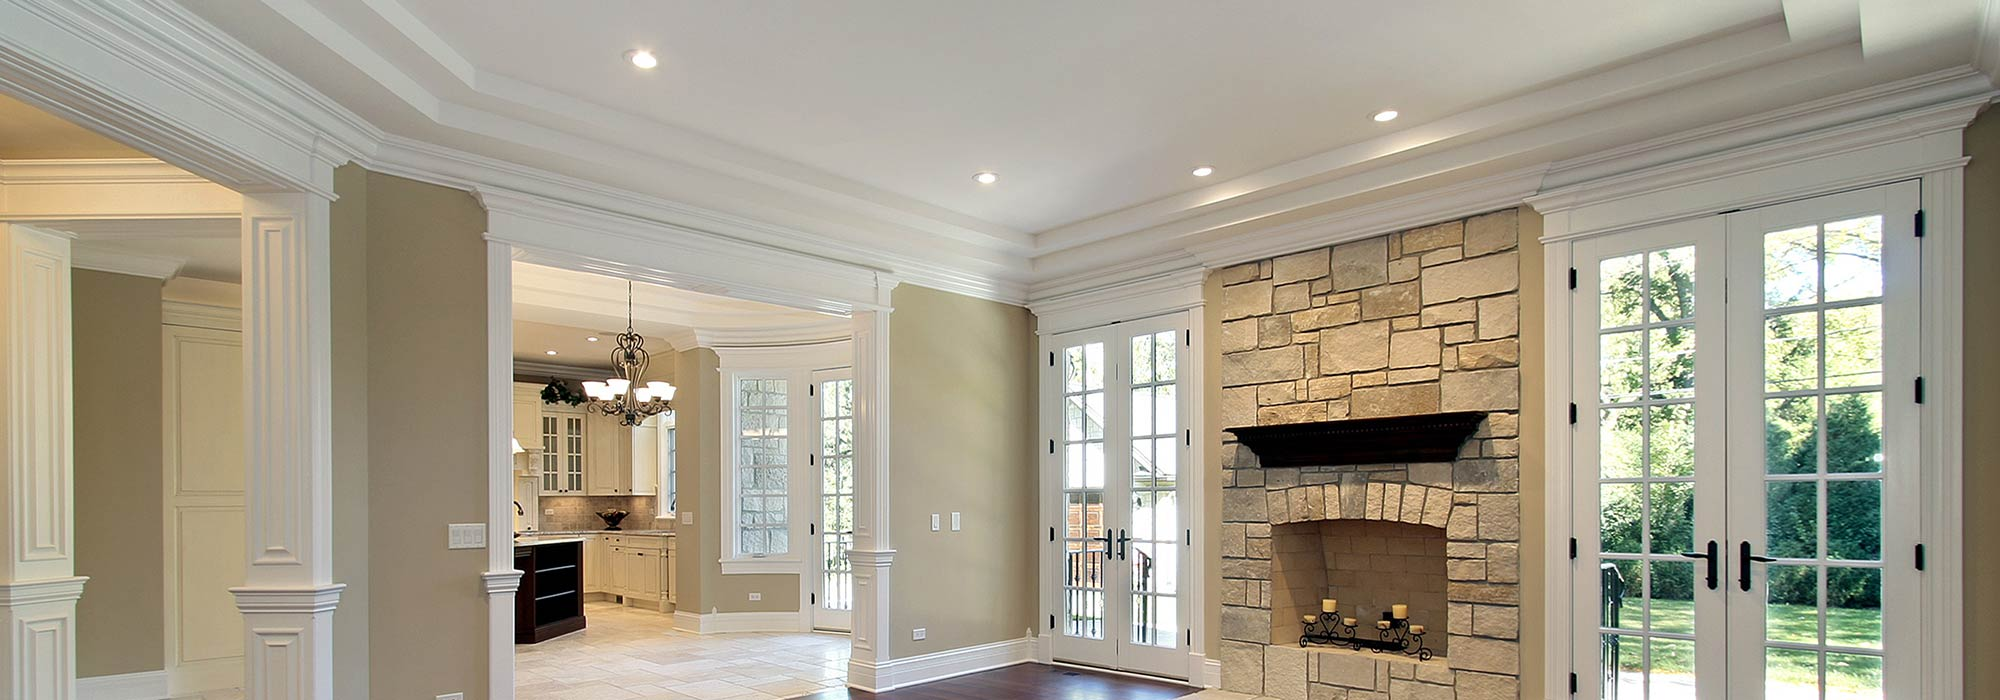 Ceiling Molding in Living Room